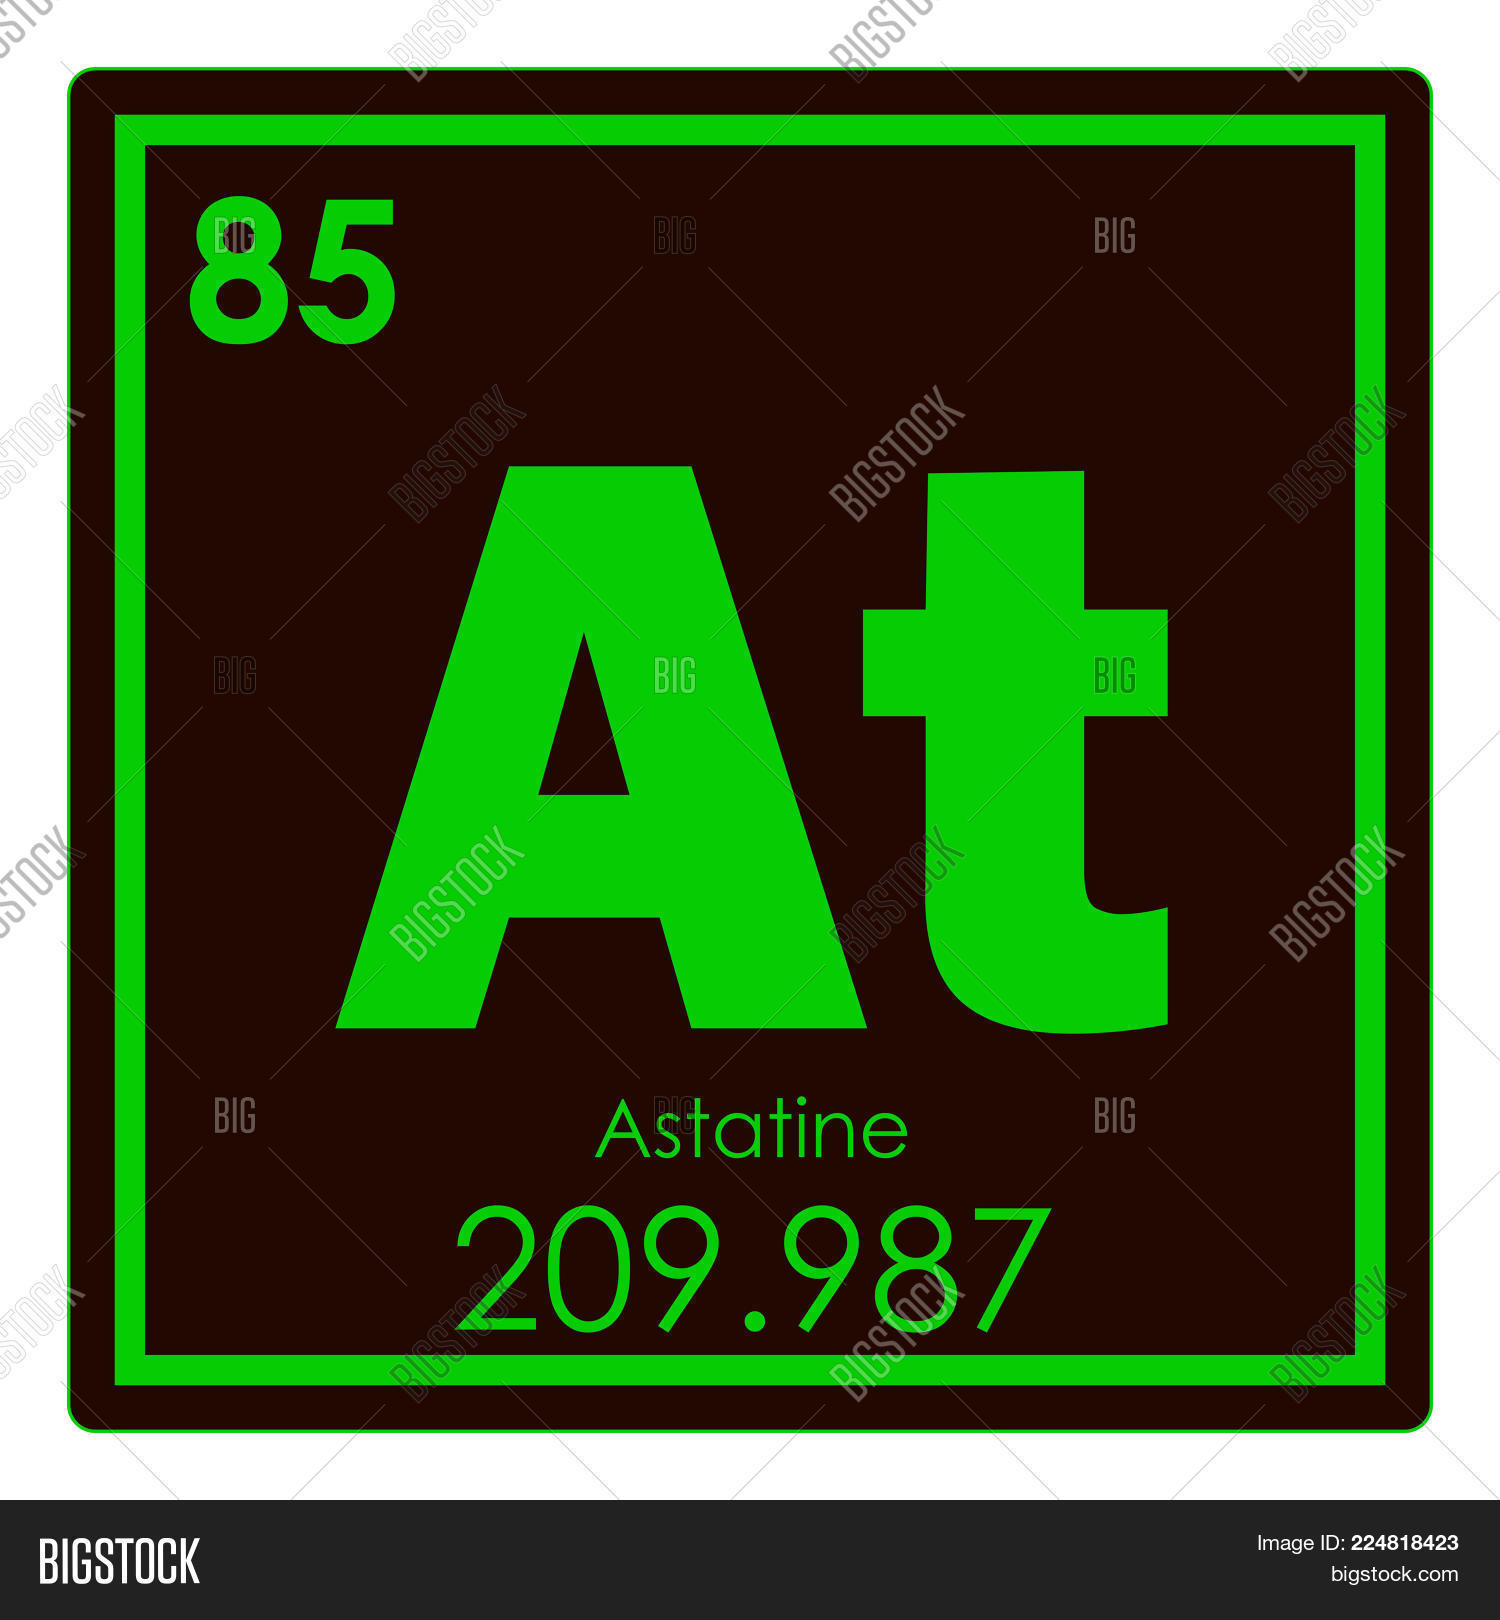 Astatine chemical image photo free trial bigstock astatine chemical element periodic table science symbol urtaz Image collections